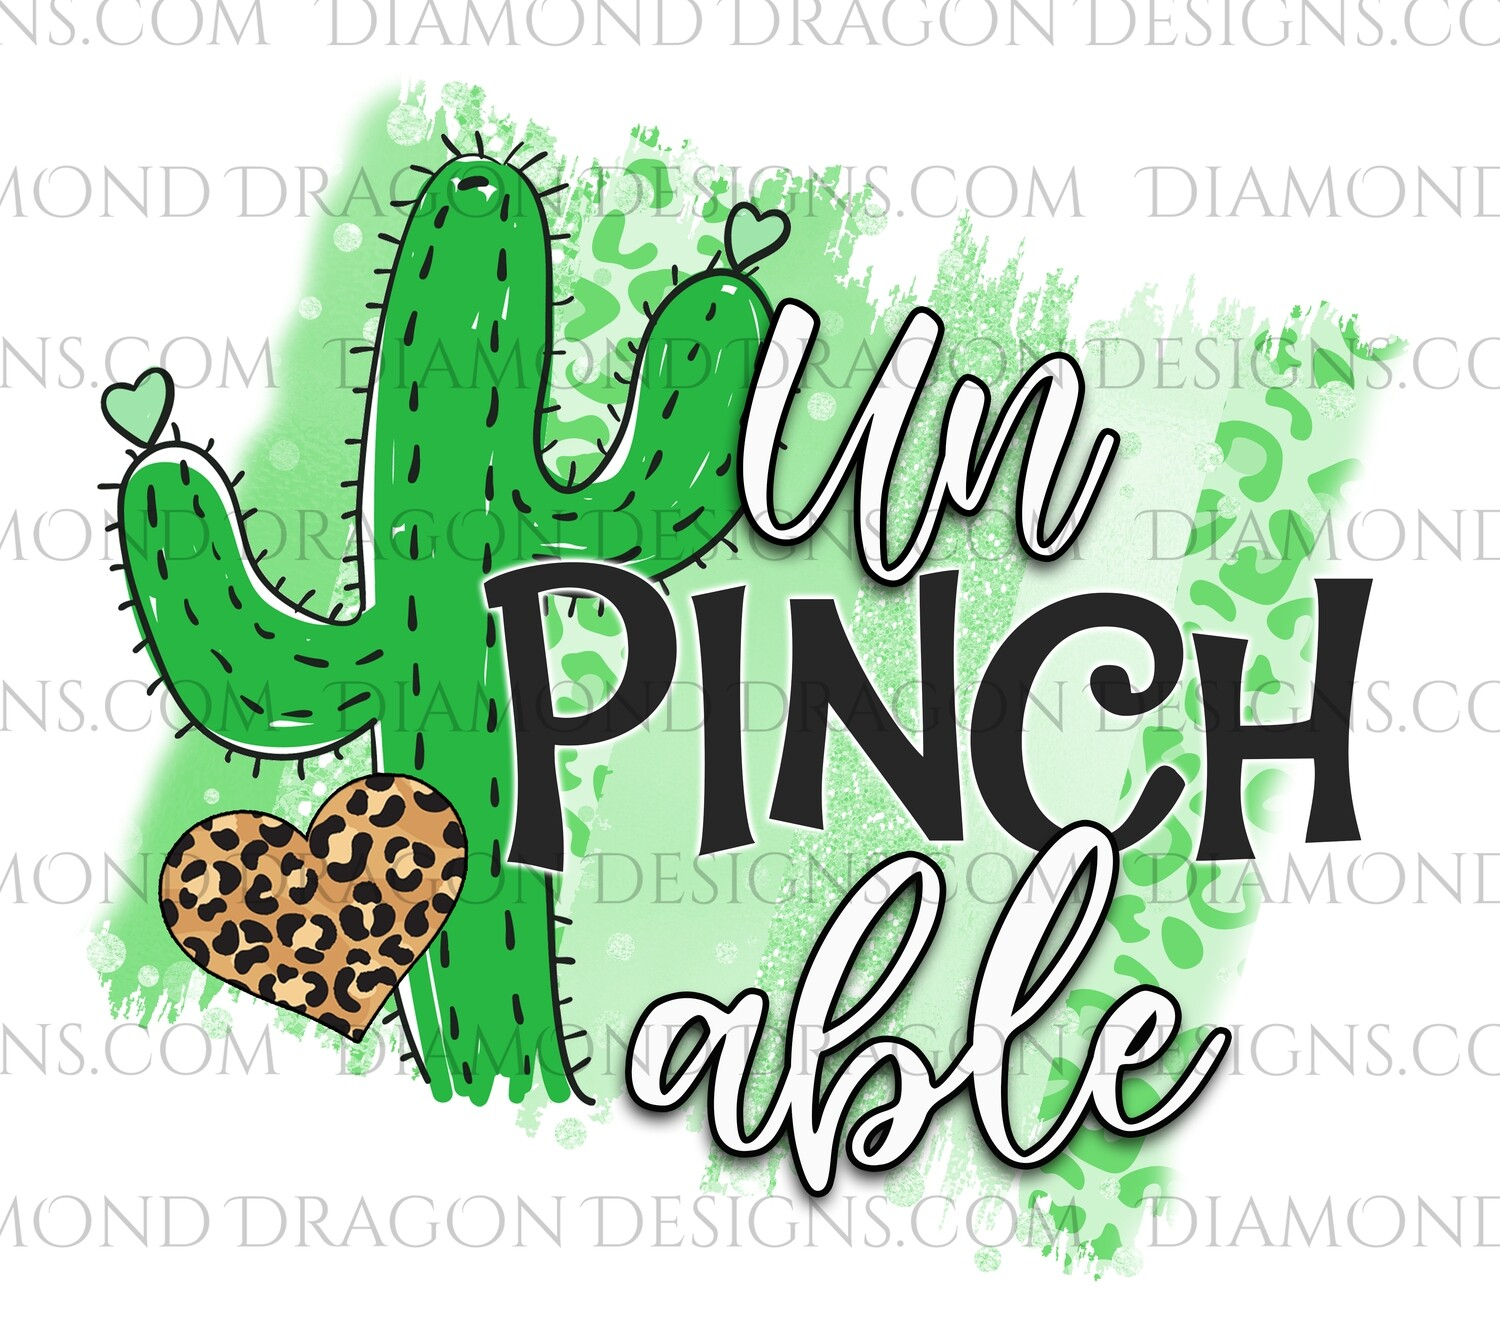 St. Patrick's Day - Cactus, Unpinchable, Leopard Heart, Waterslide Decal